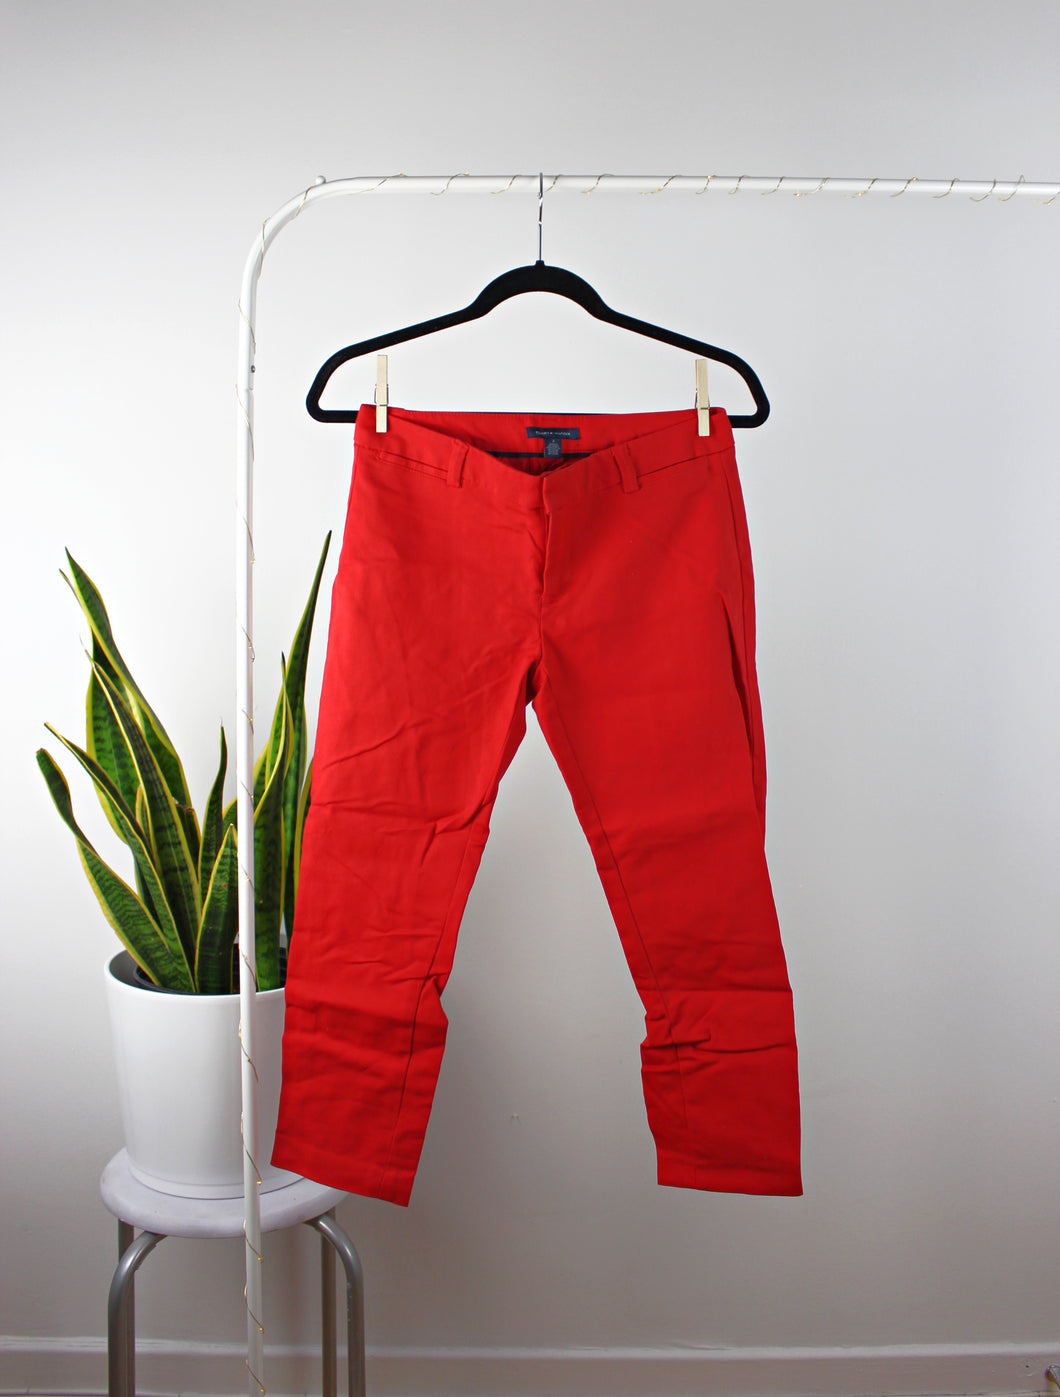 Le pantalon rouge intense